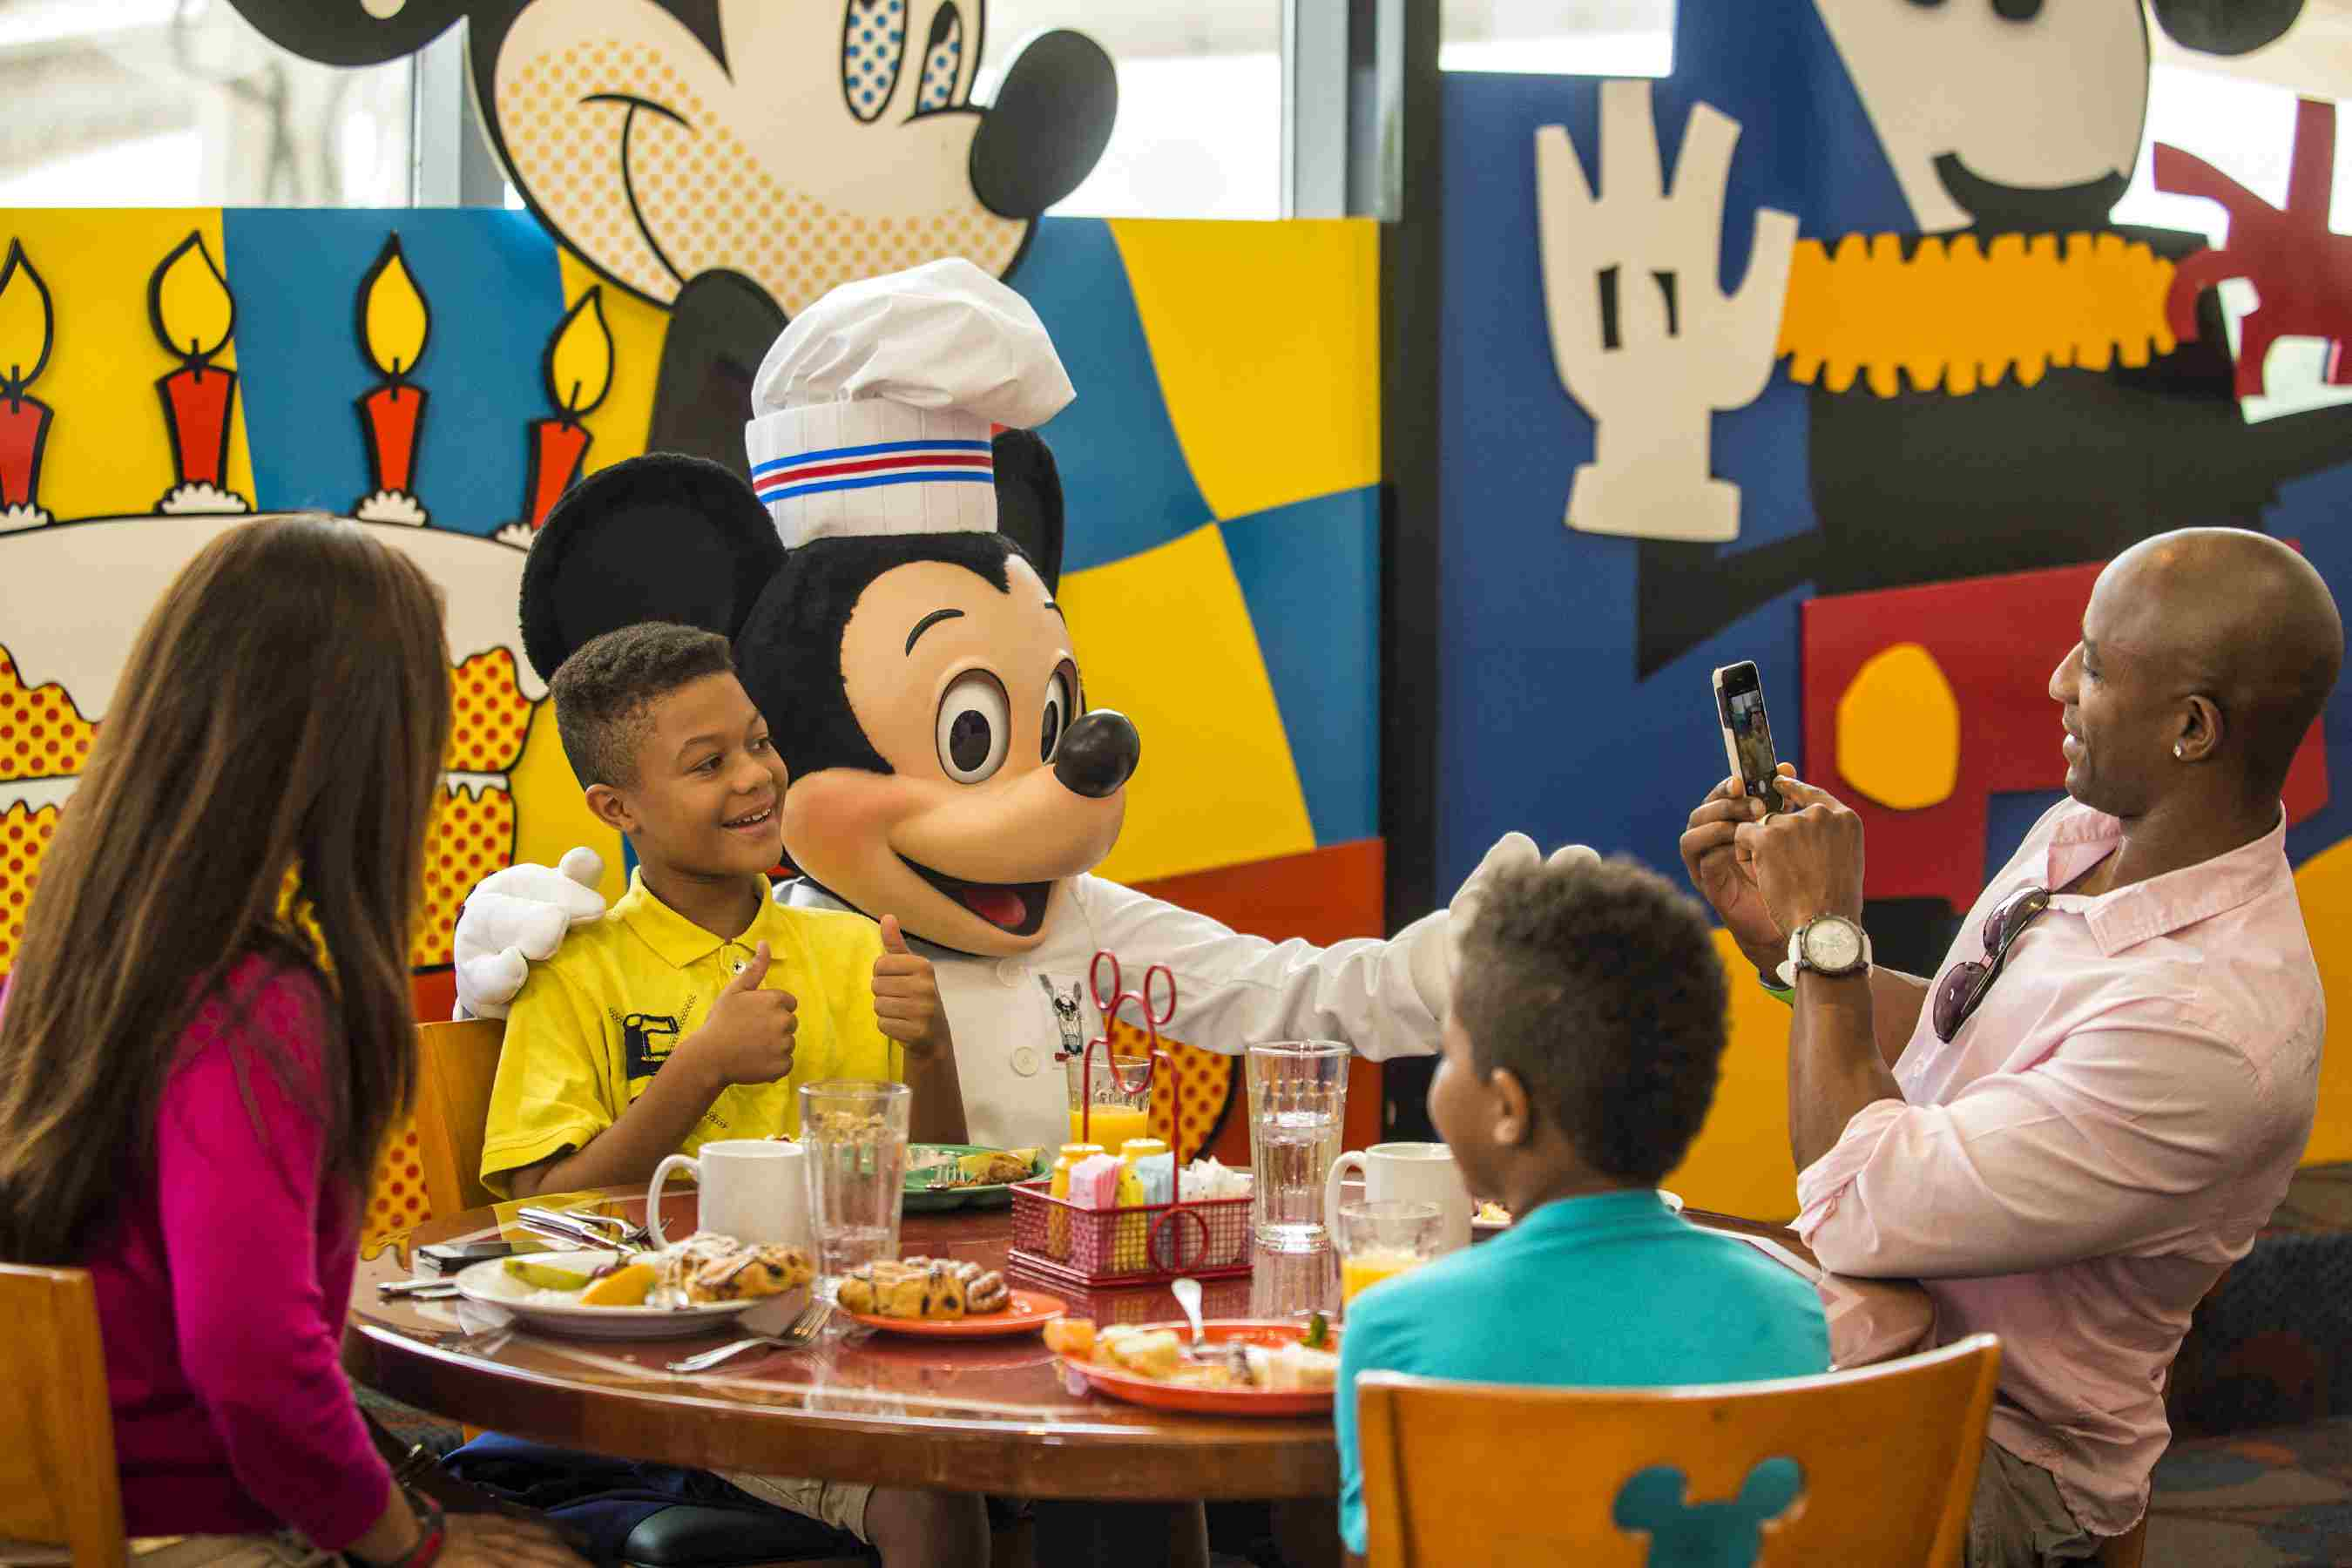 Mickey Mouse posing for a photo with a boy at a Disney character dining experience